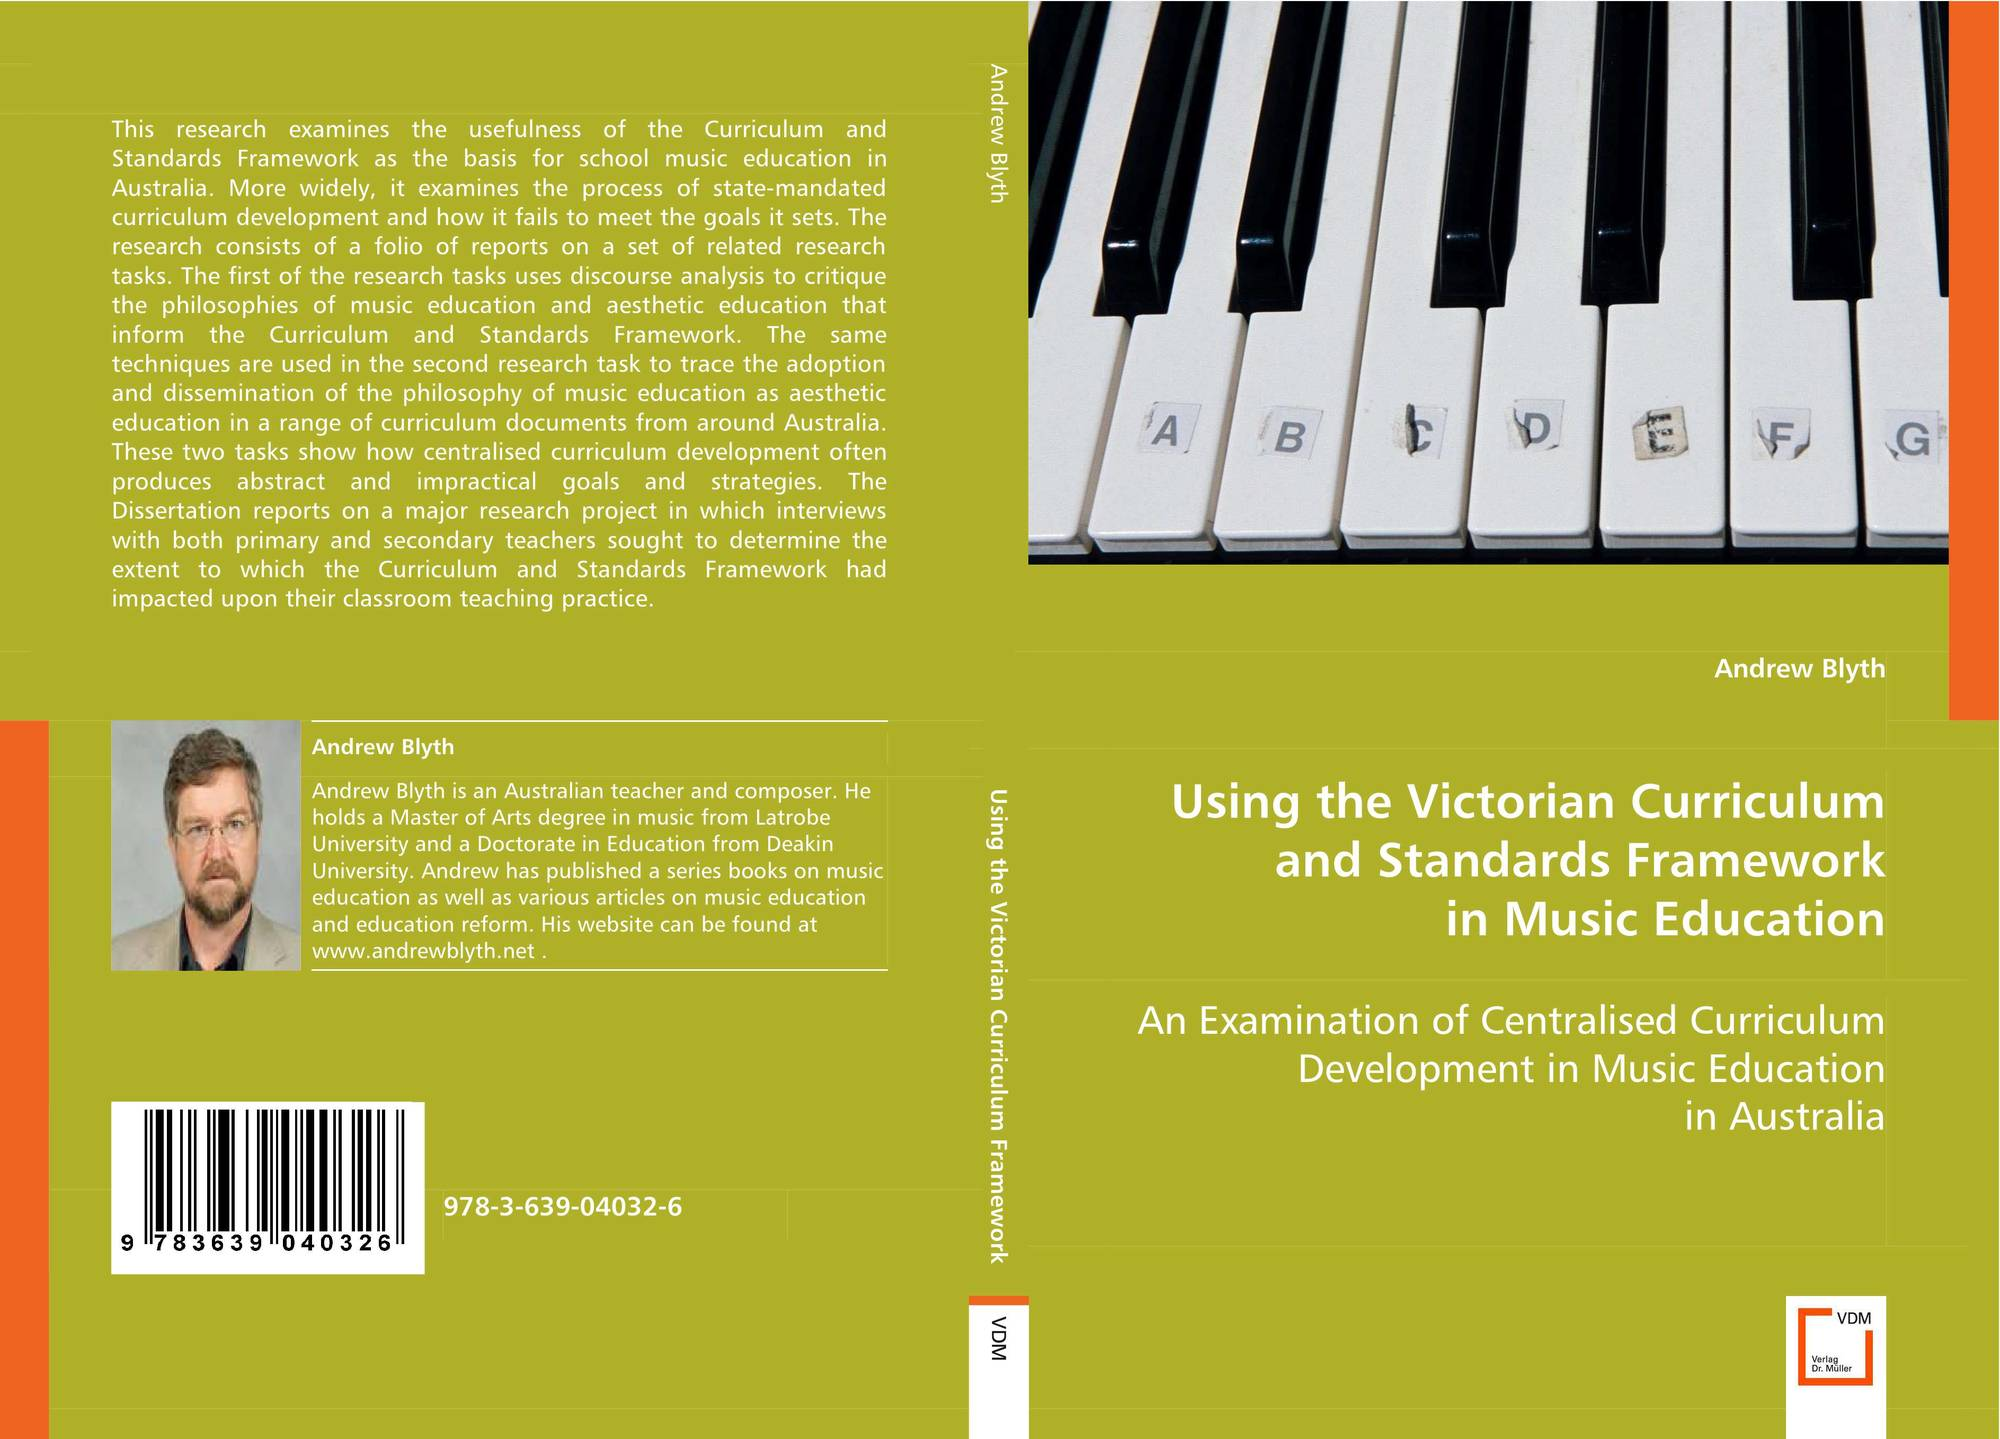 curriculum development guidelines for piano teachers Curriculum development a curriculum provides a path for teachers and students  testimonials  aiming to answer these questions, this project serves as a guideline for curriculum development—specifically, for piano teachers it synthesizes research in general public education on curriculum development published in the last sixty years in.